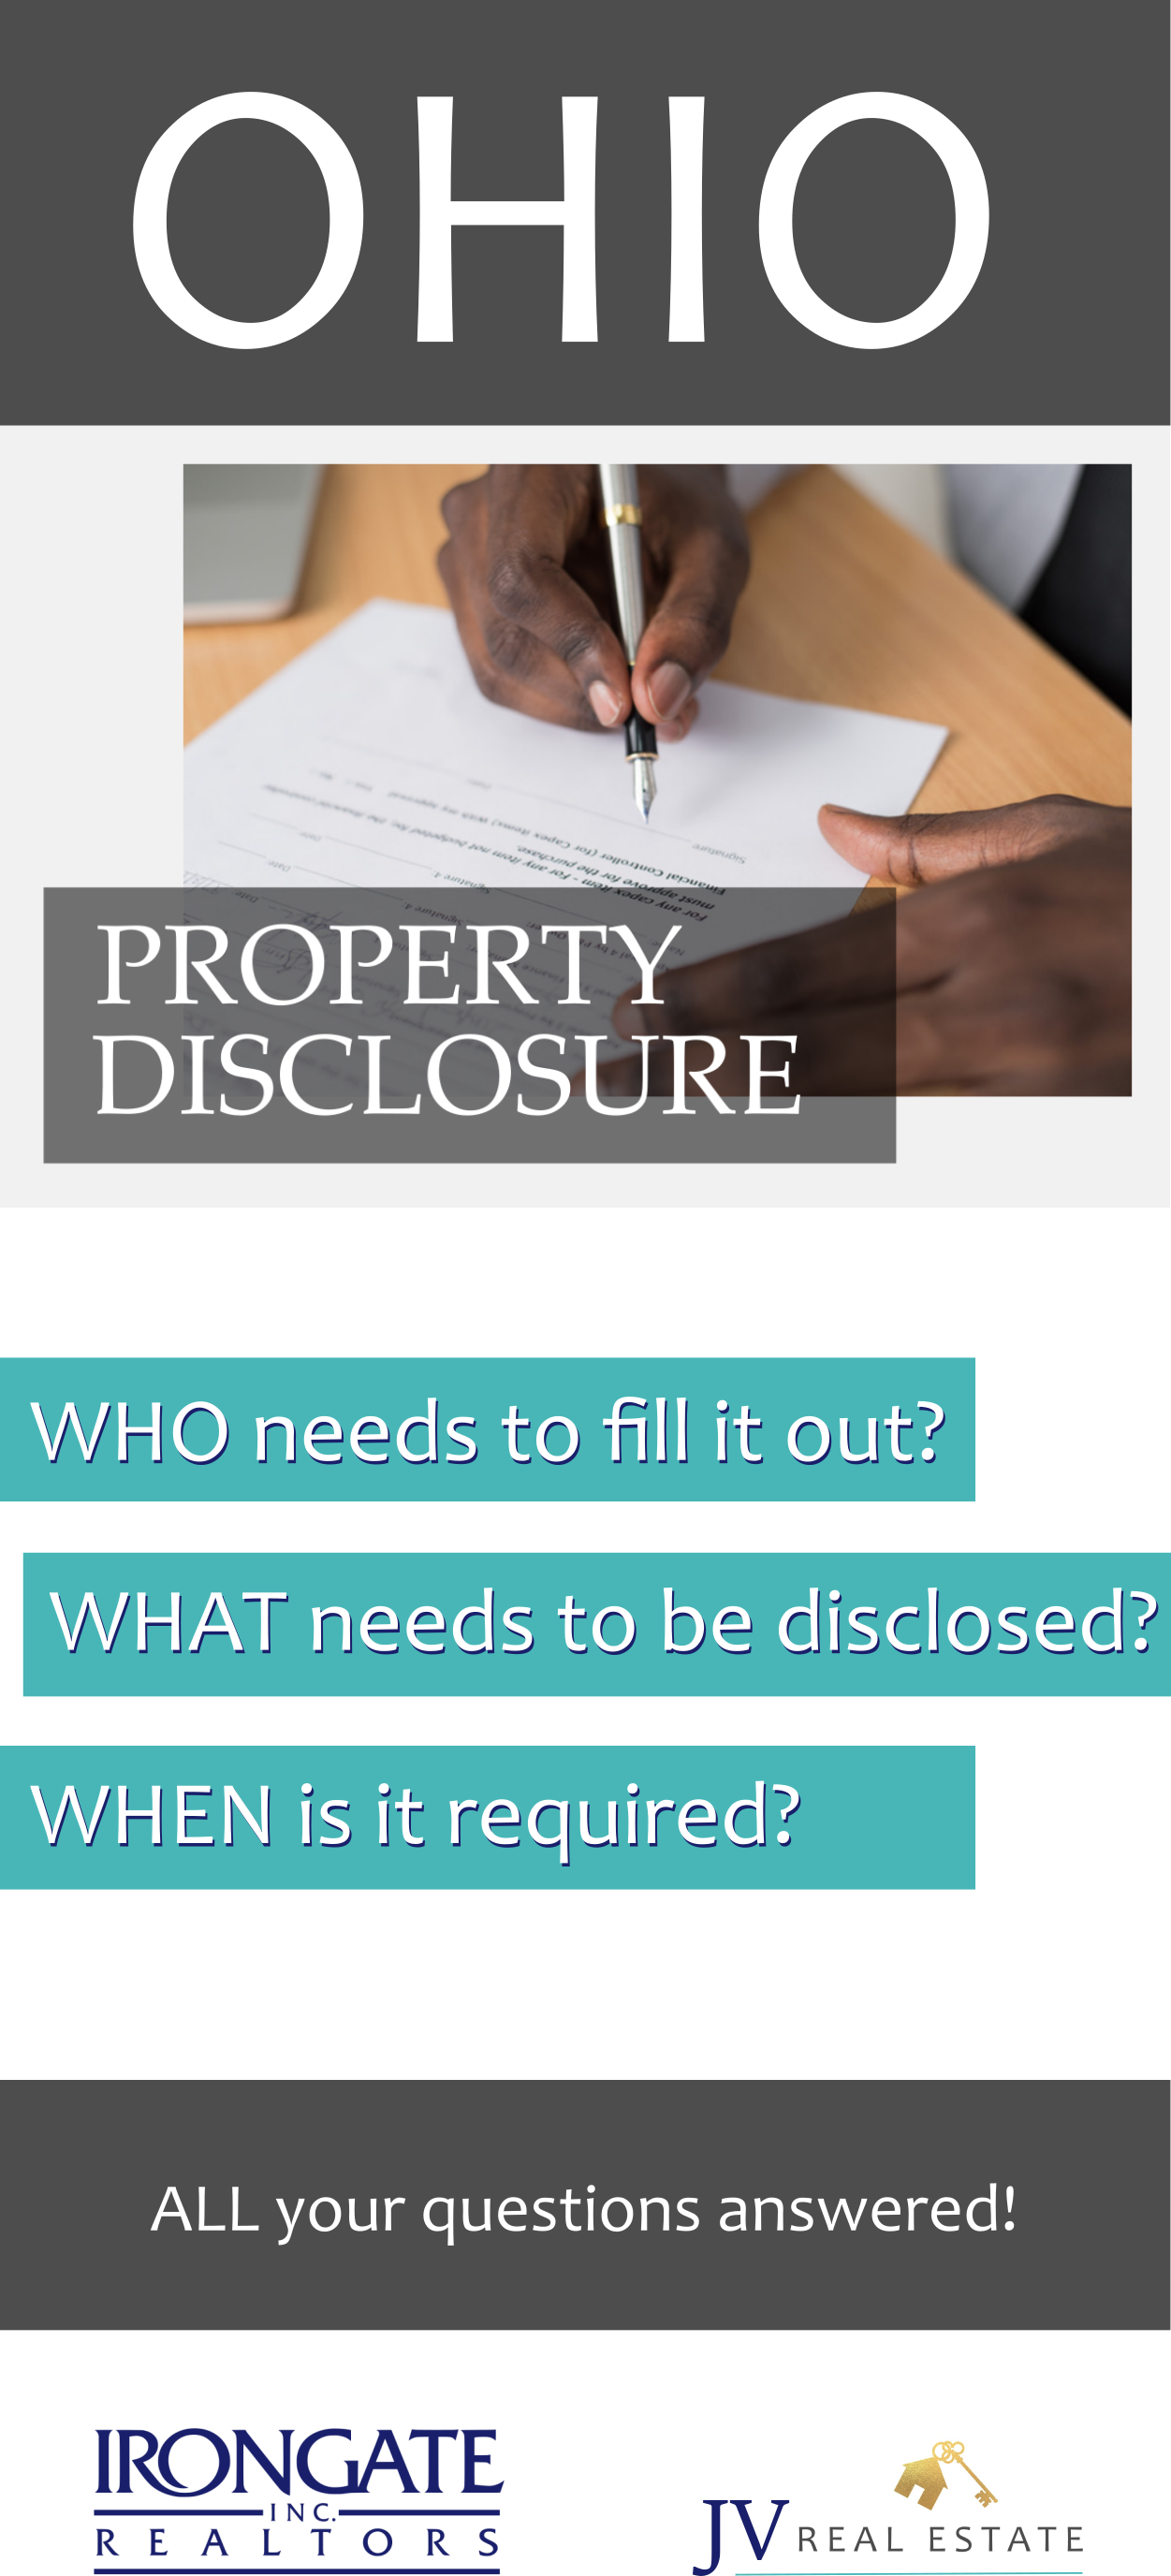 Residential Property Disclosures in 2019 Selling your